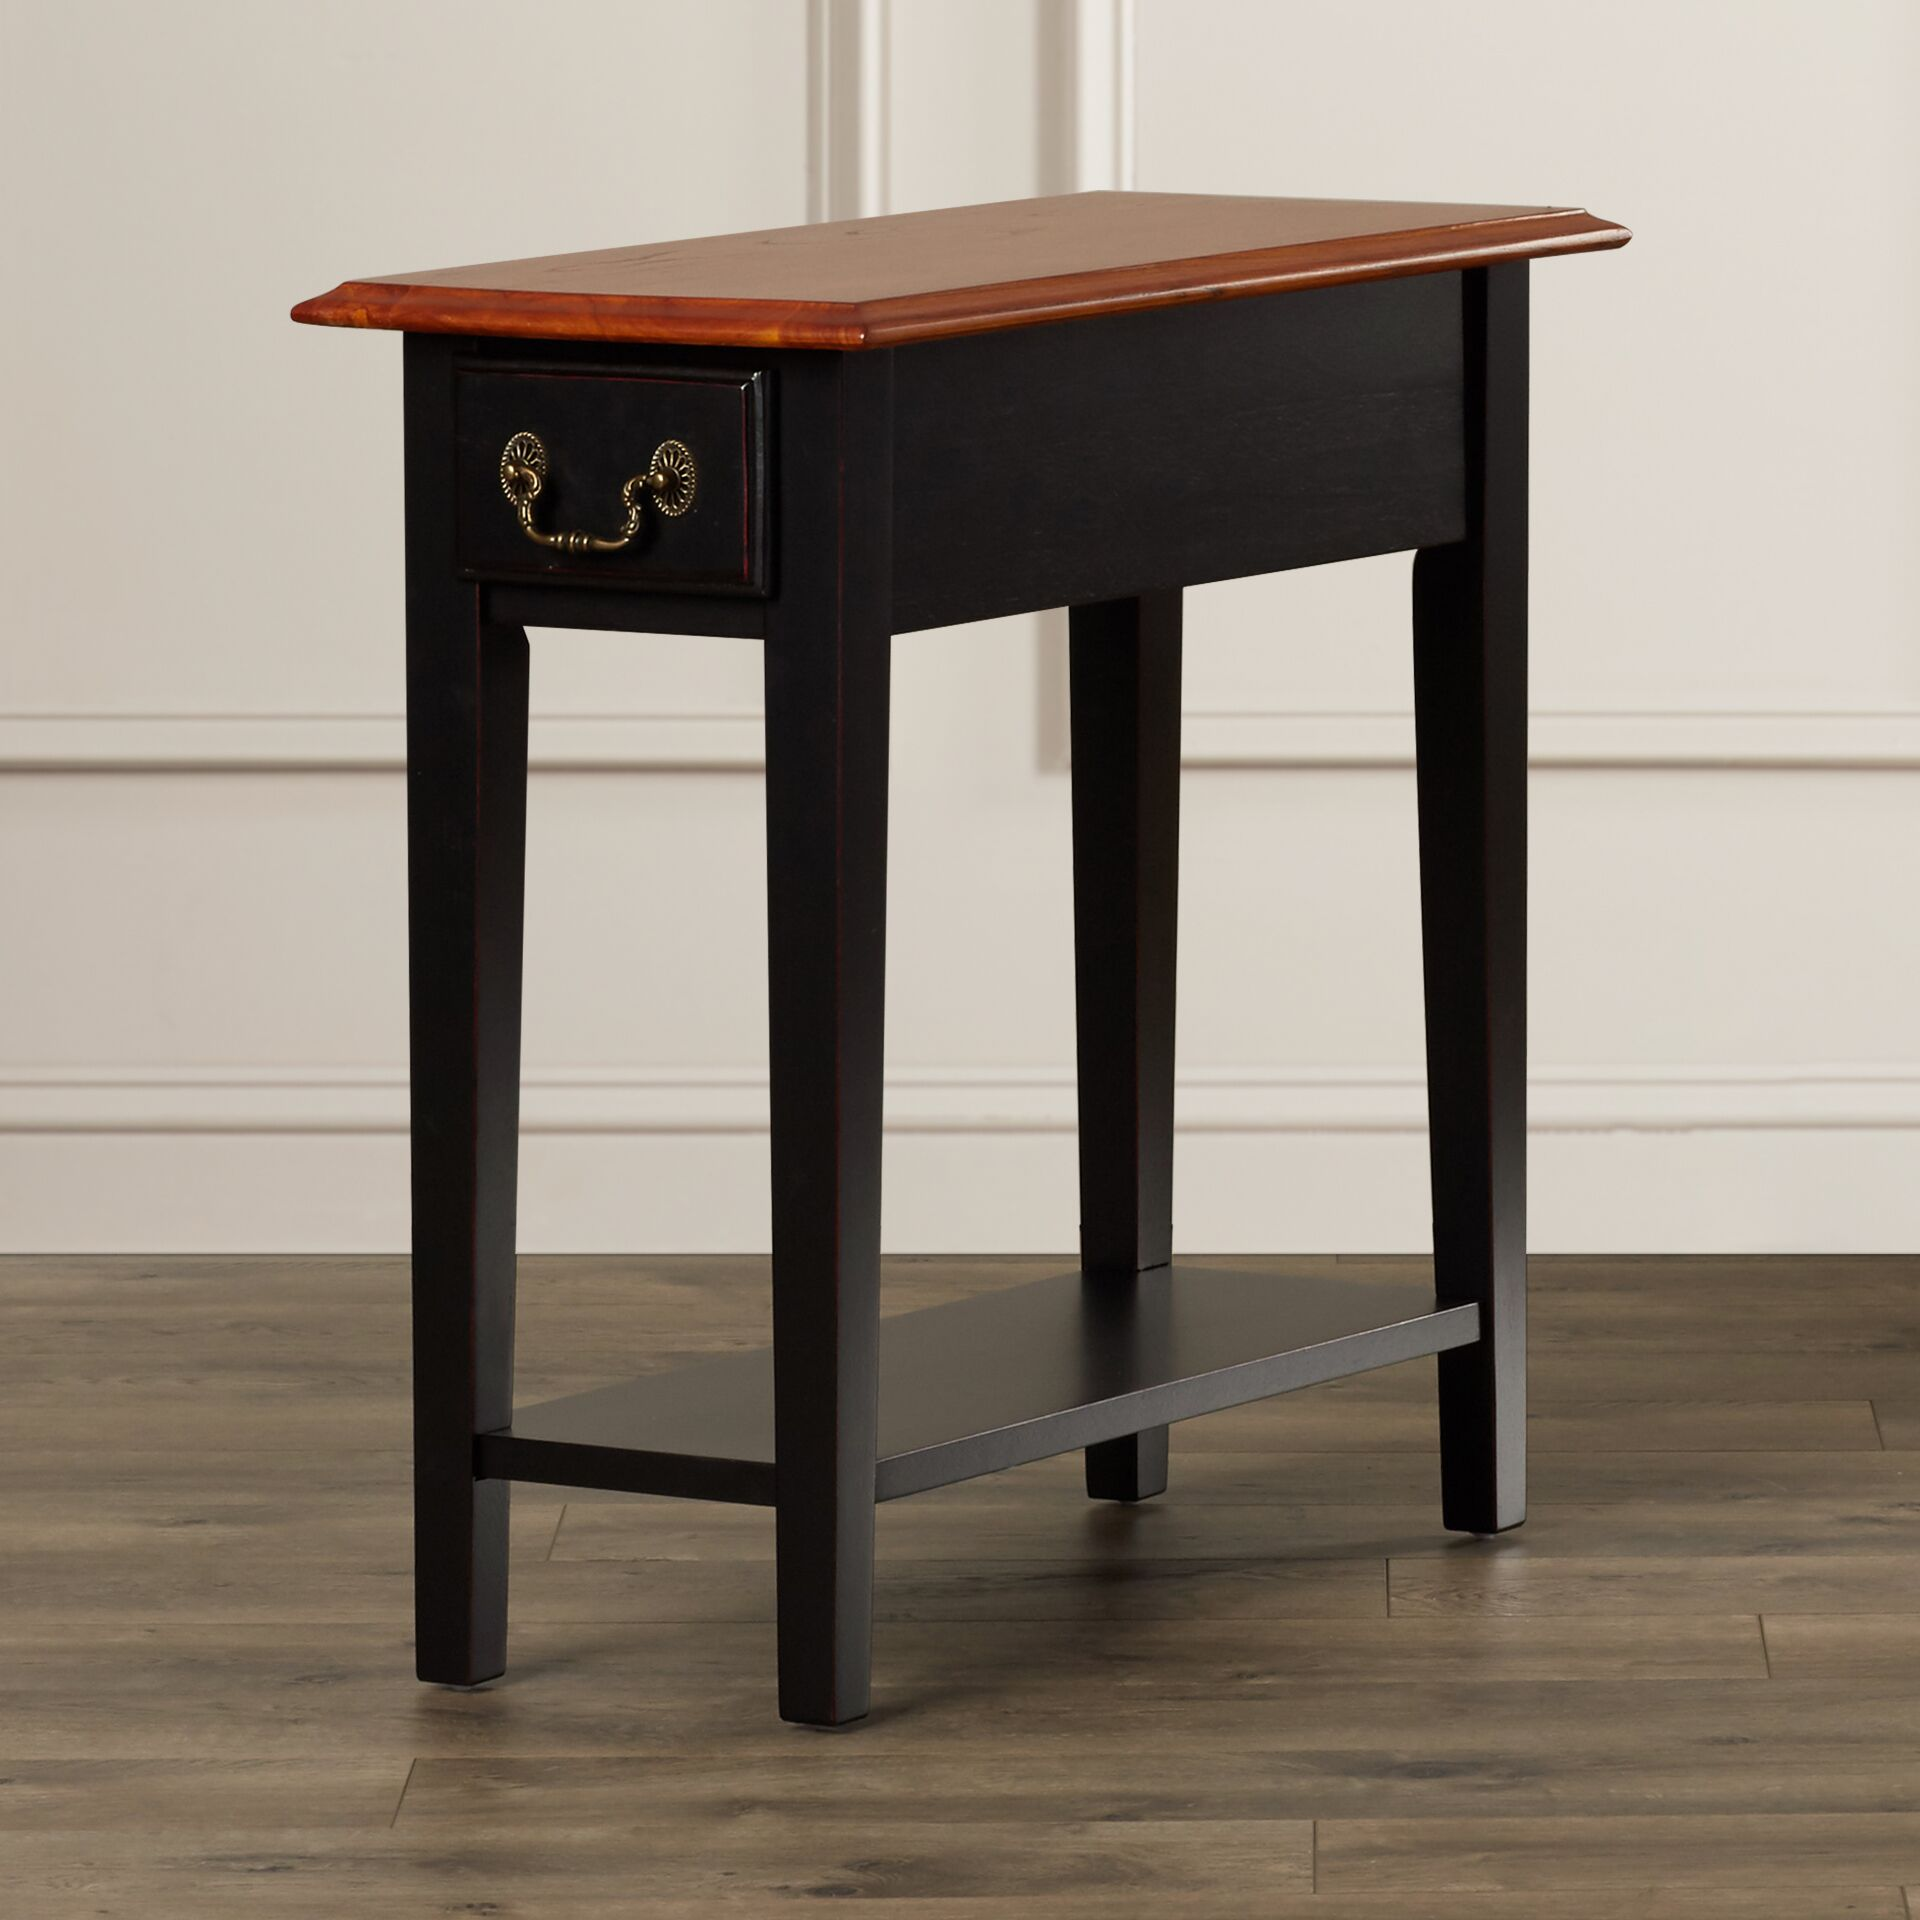 Revere Broomhedge End Table With Storage Color: Brown Cherry / Black